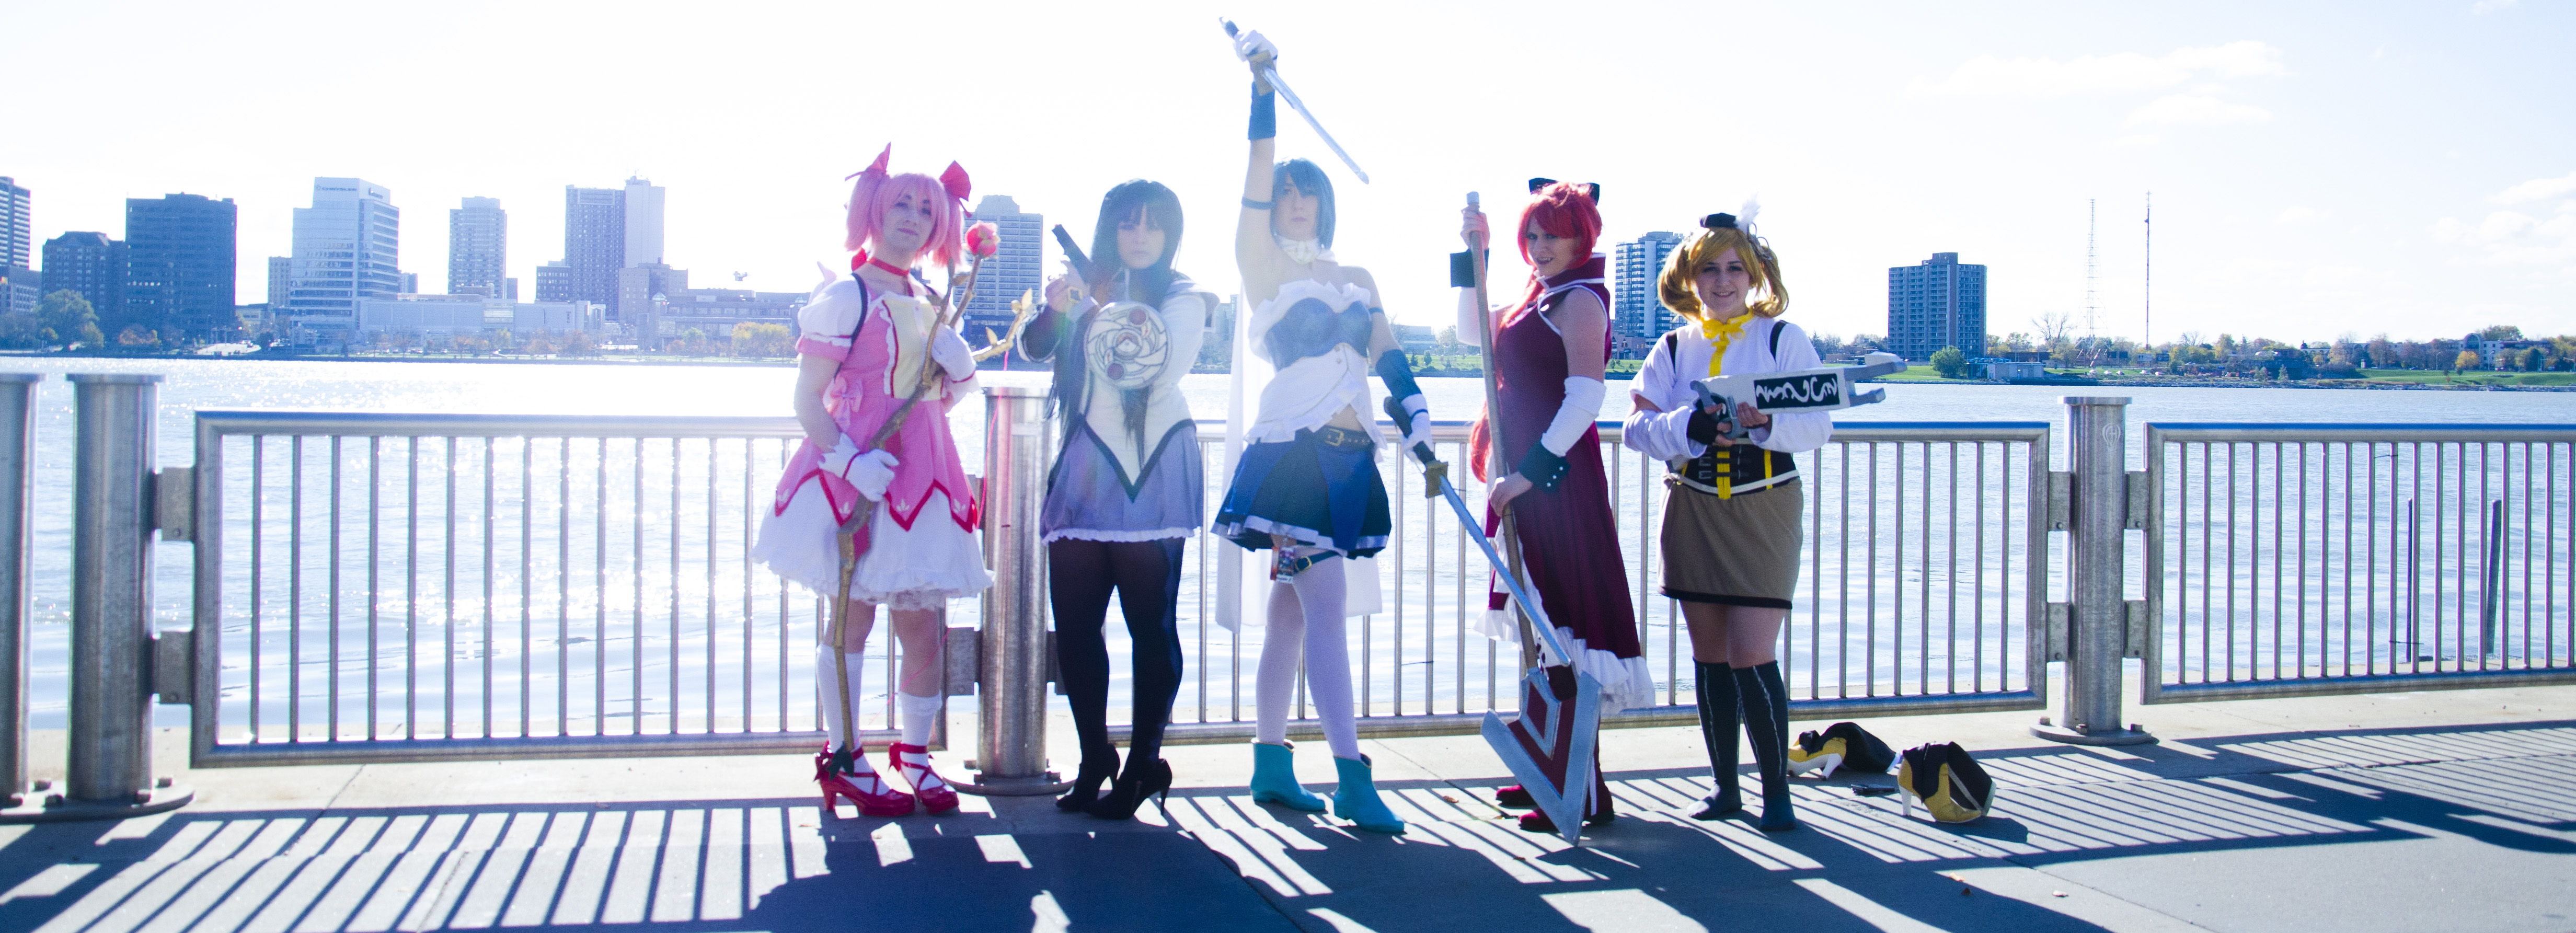 how are michigan's comic and anime conventions faring? | michigan radio